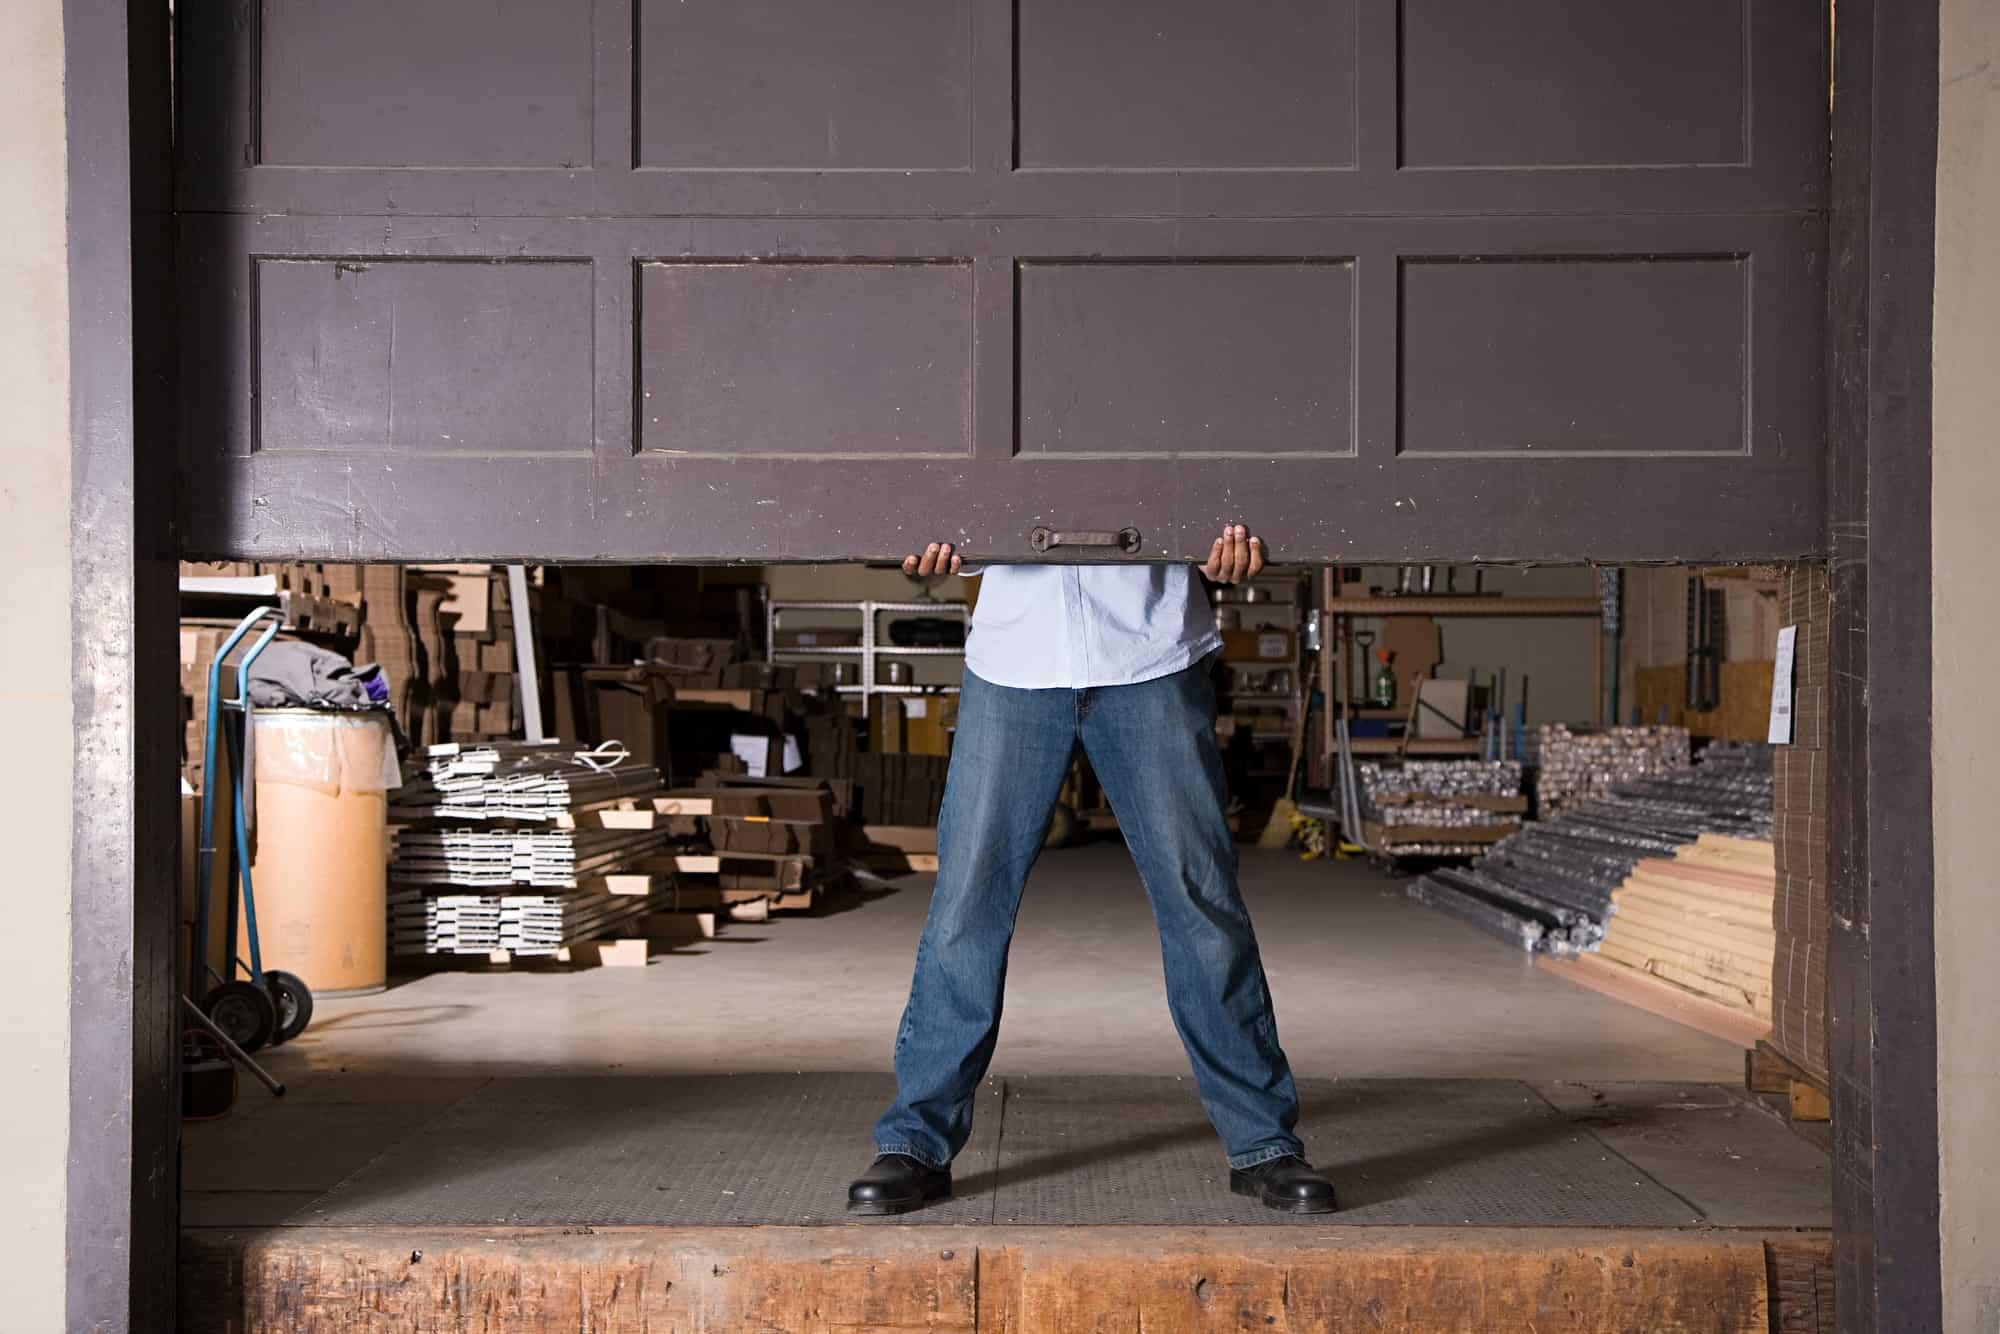 Garage door repair utah top 5 reasons to hire pros solutioingenieria Choice Image